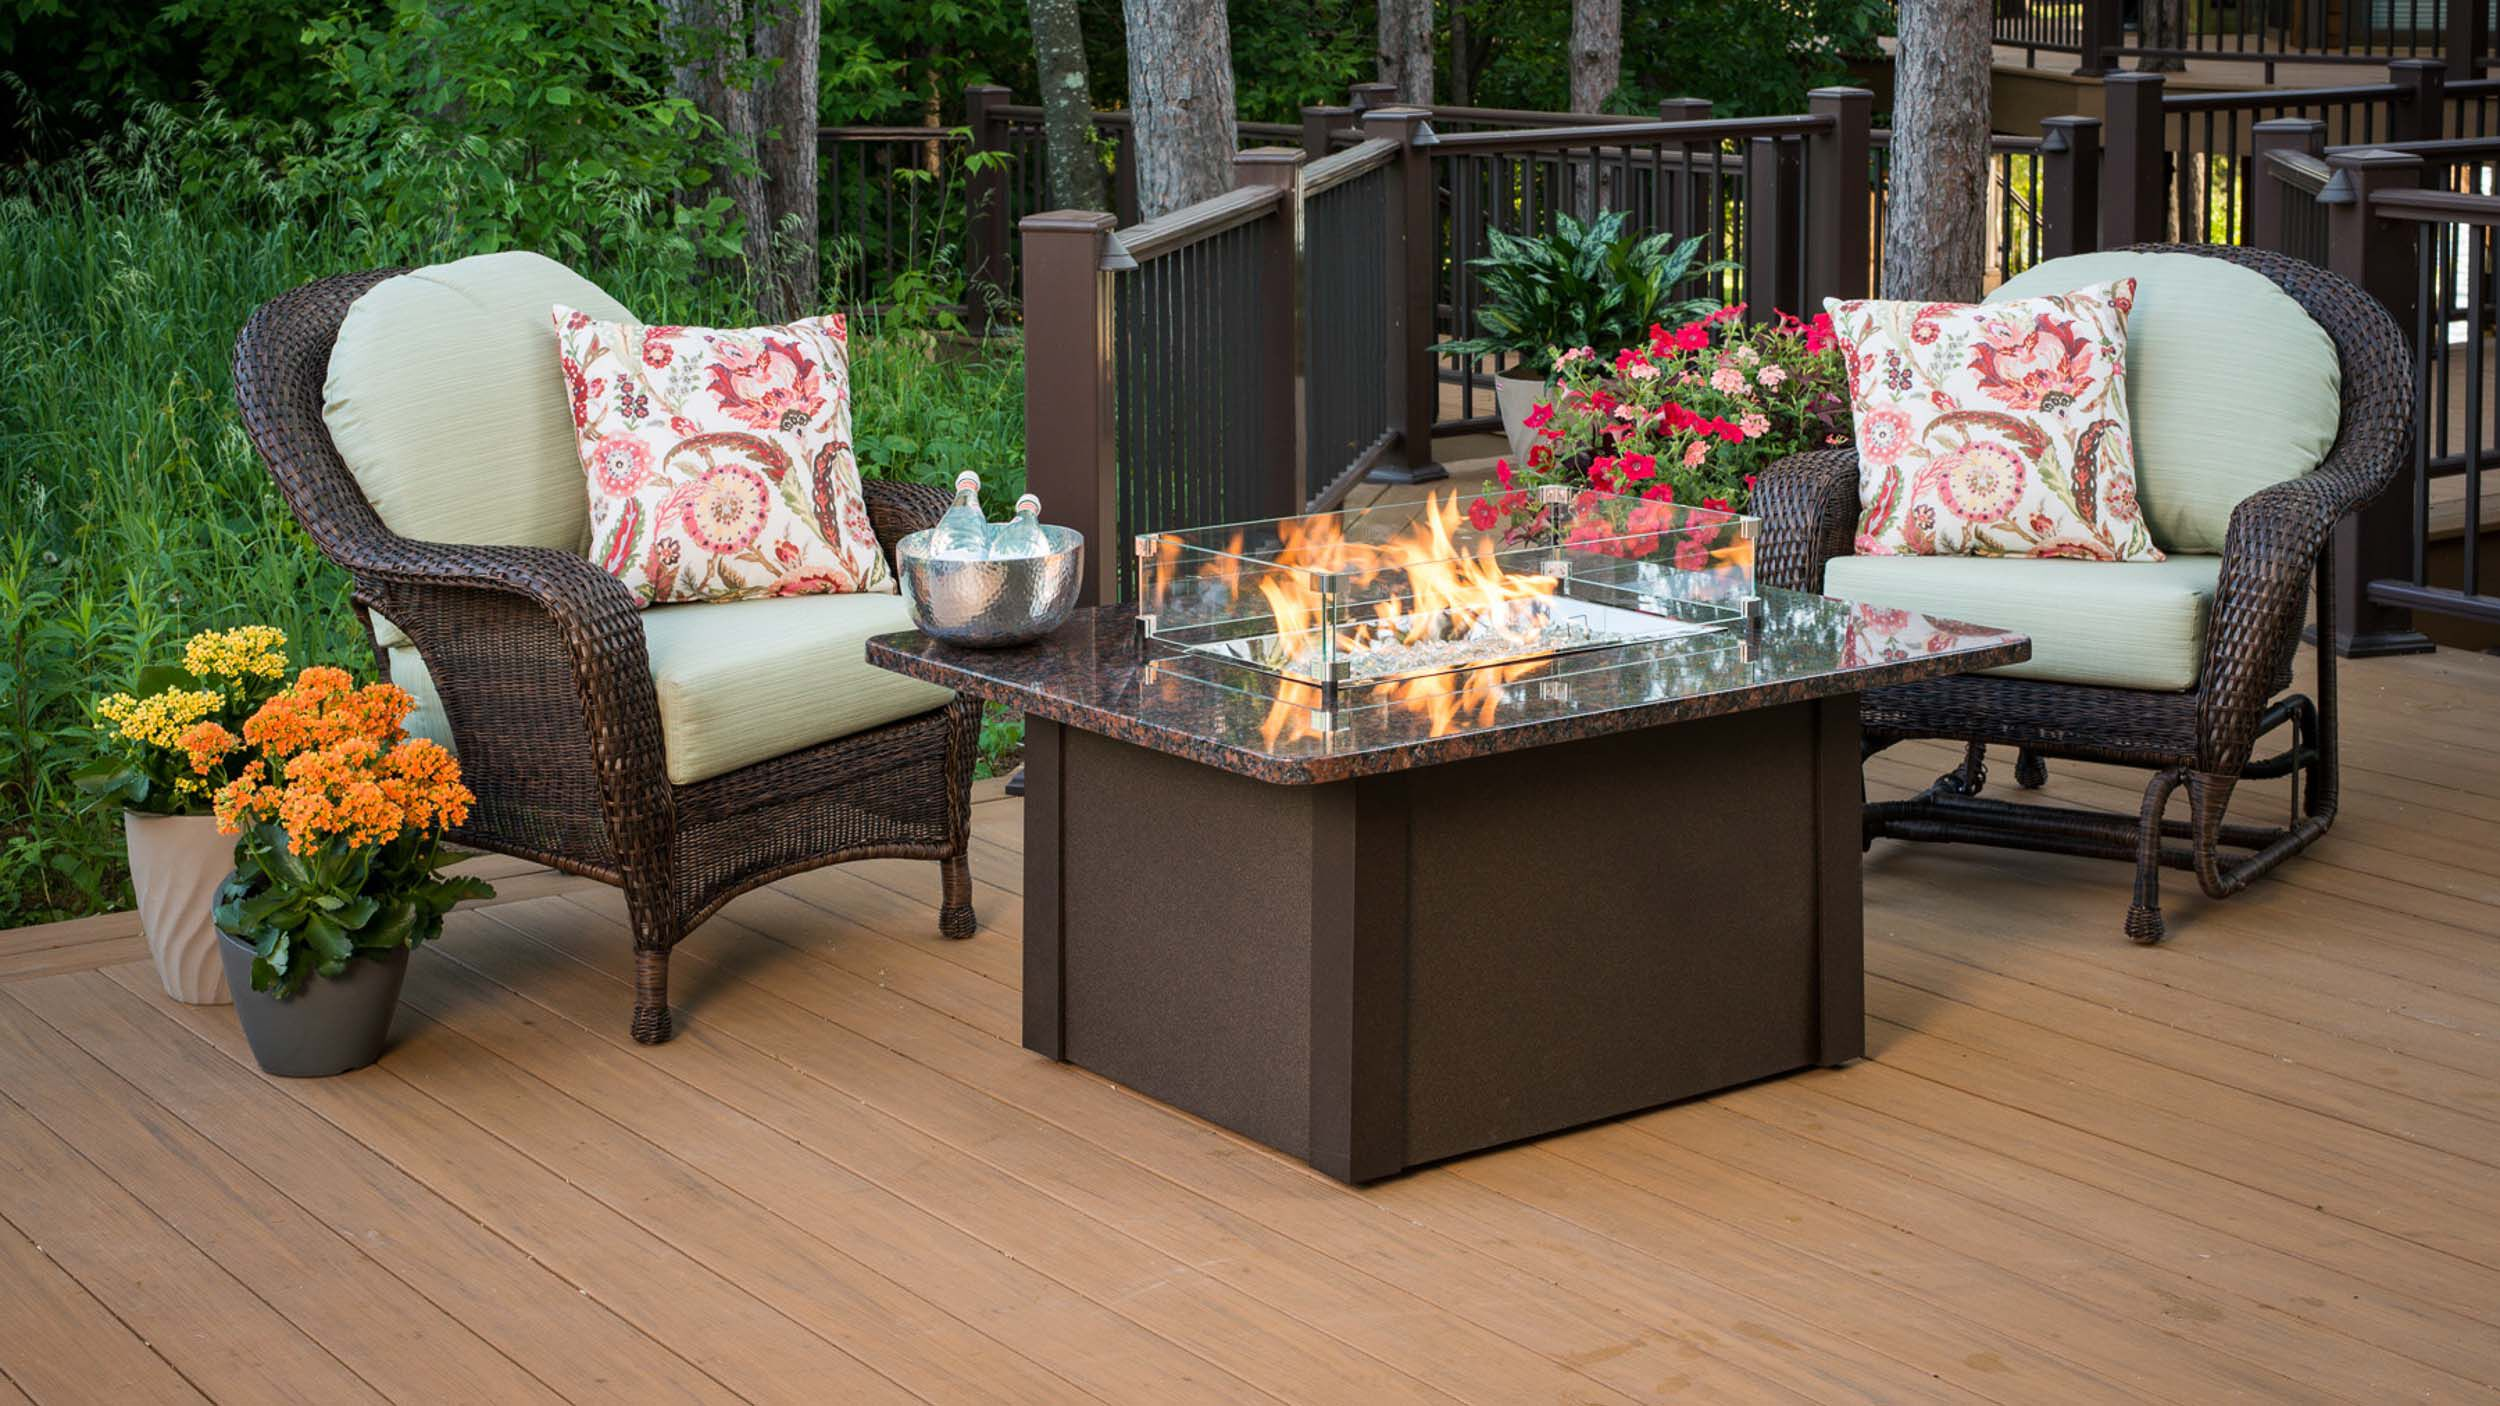 The Best Gas Fire Pits For Decks 2021 Woodlanddirect Com